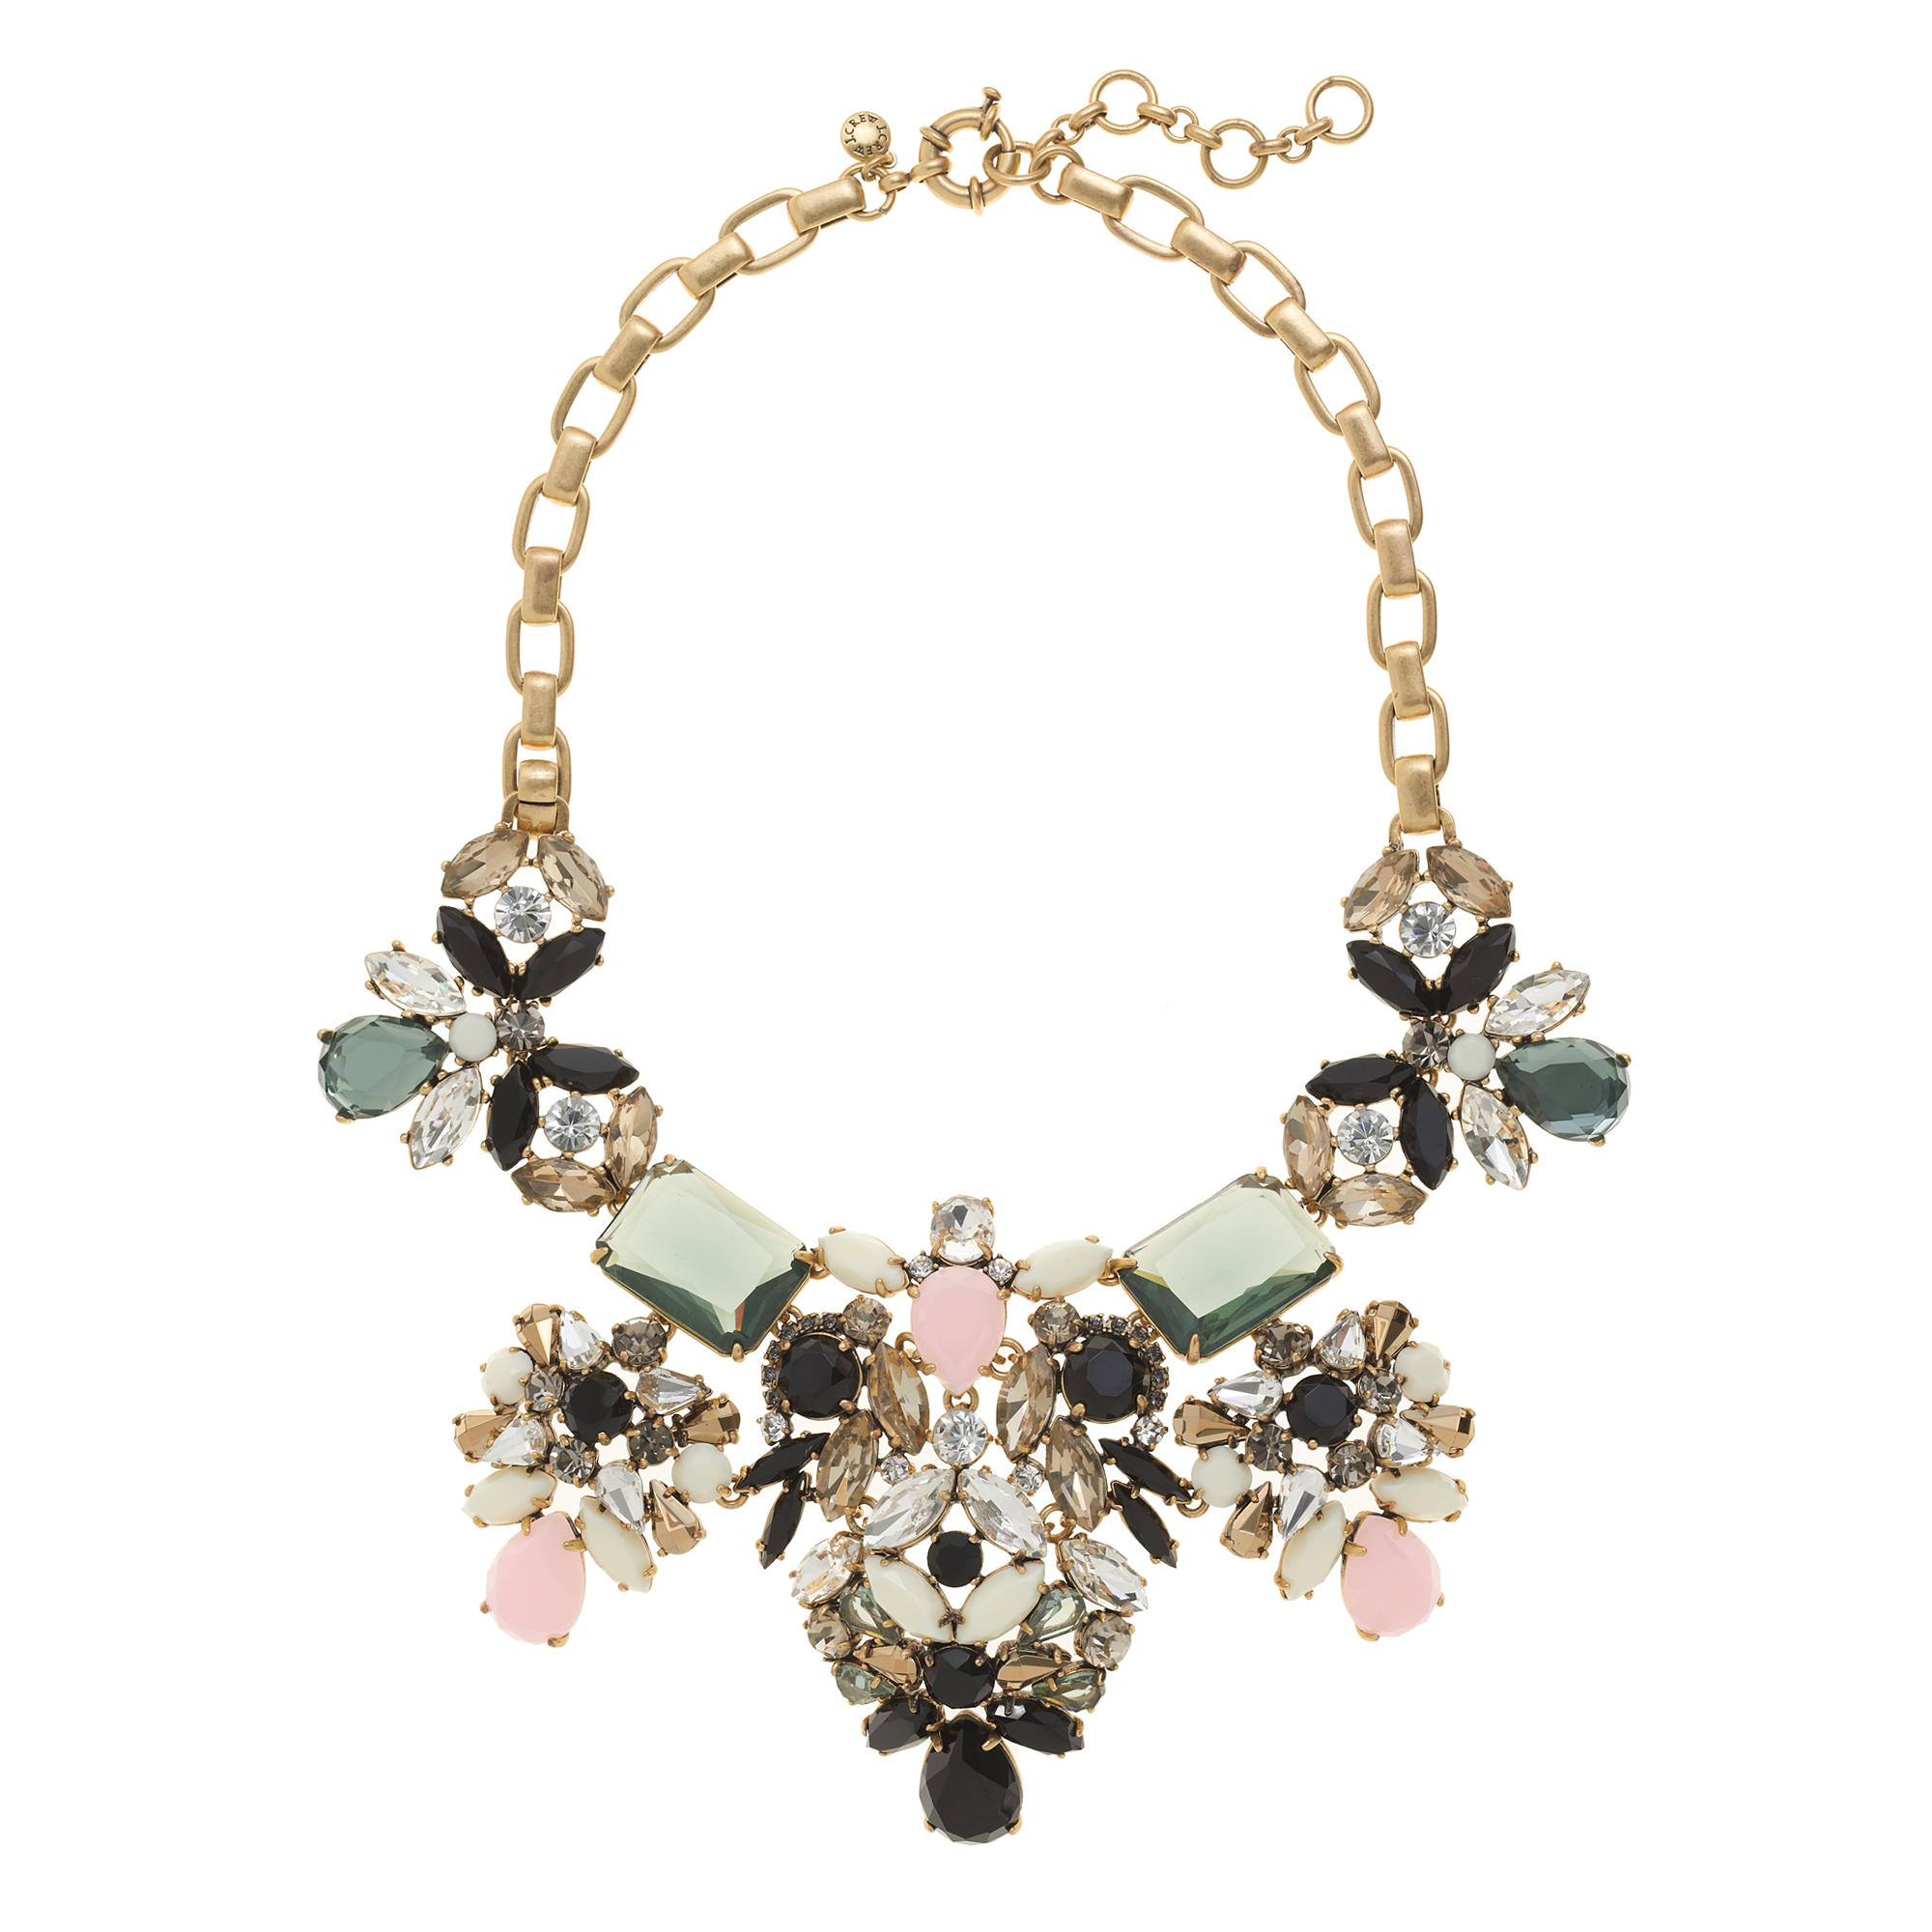 Floral pastel statement necklace j crew for J crew jewelry 2015